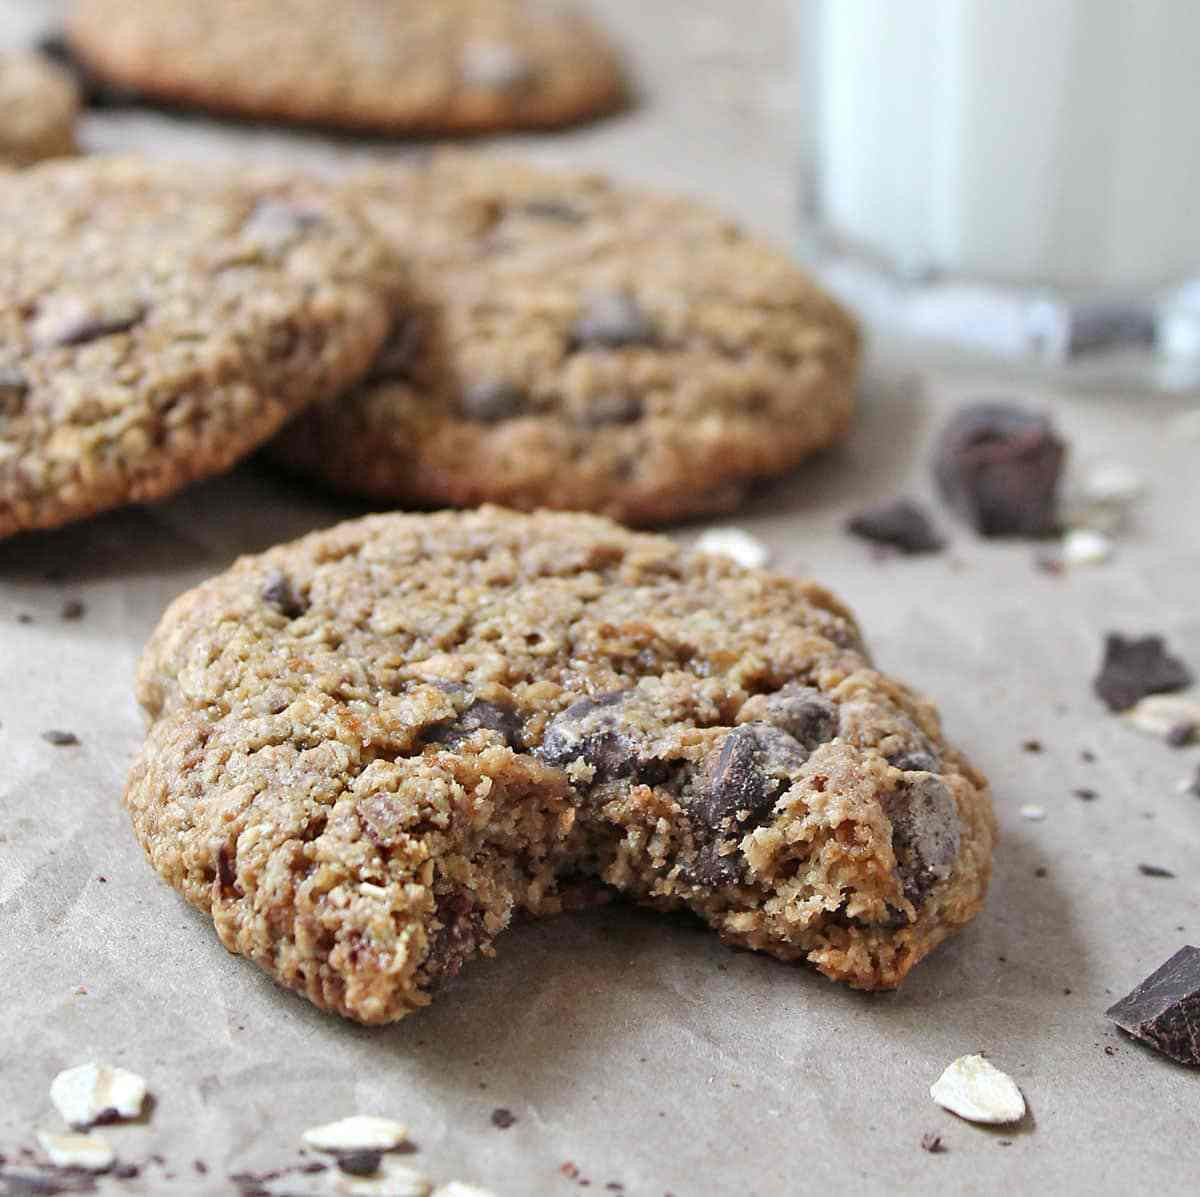 Gluten Free Oatmeal Chocolate Chip Cookies  My Favorite Gluten Free Oatmeal Chocolate Chip Cookies